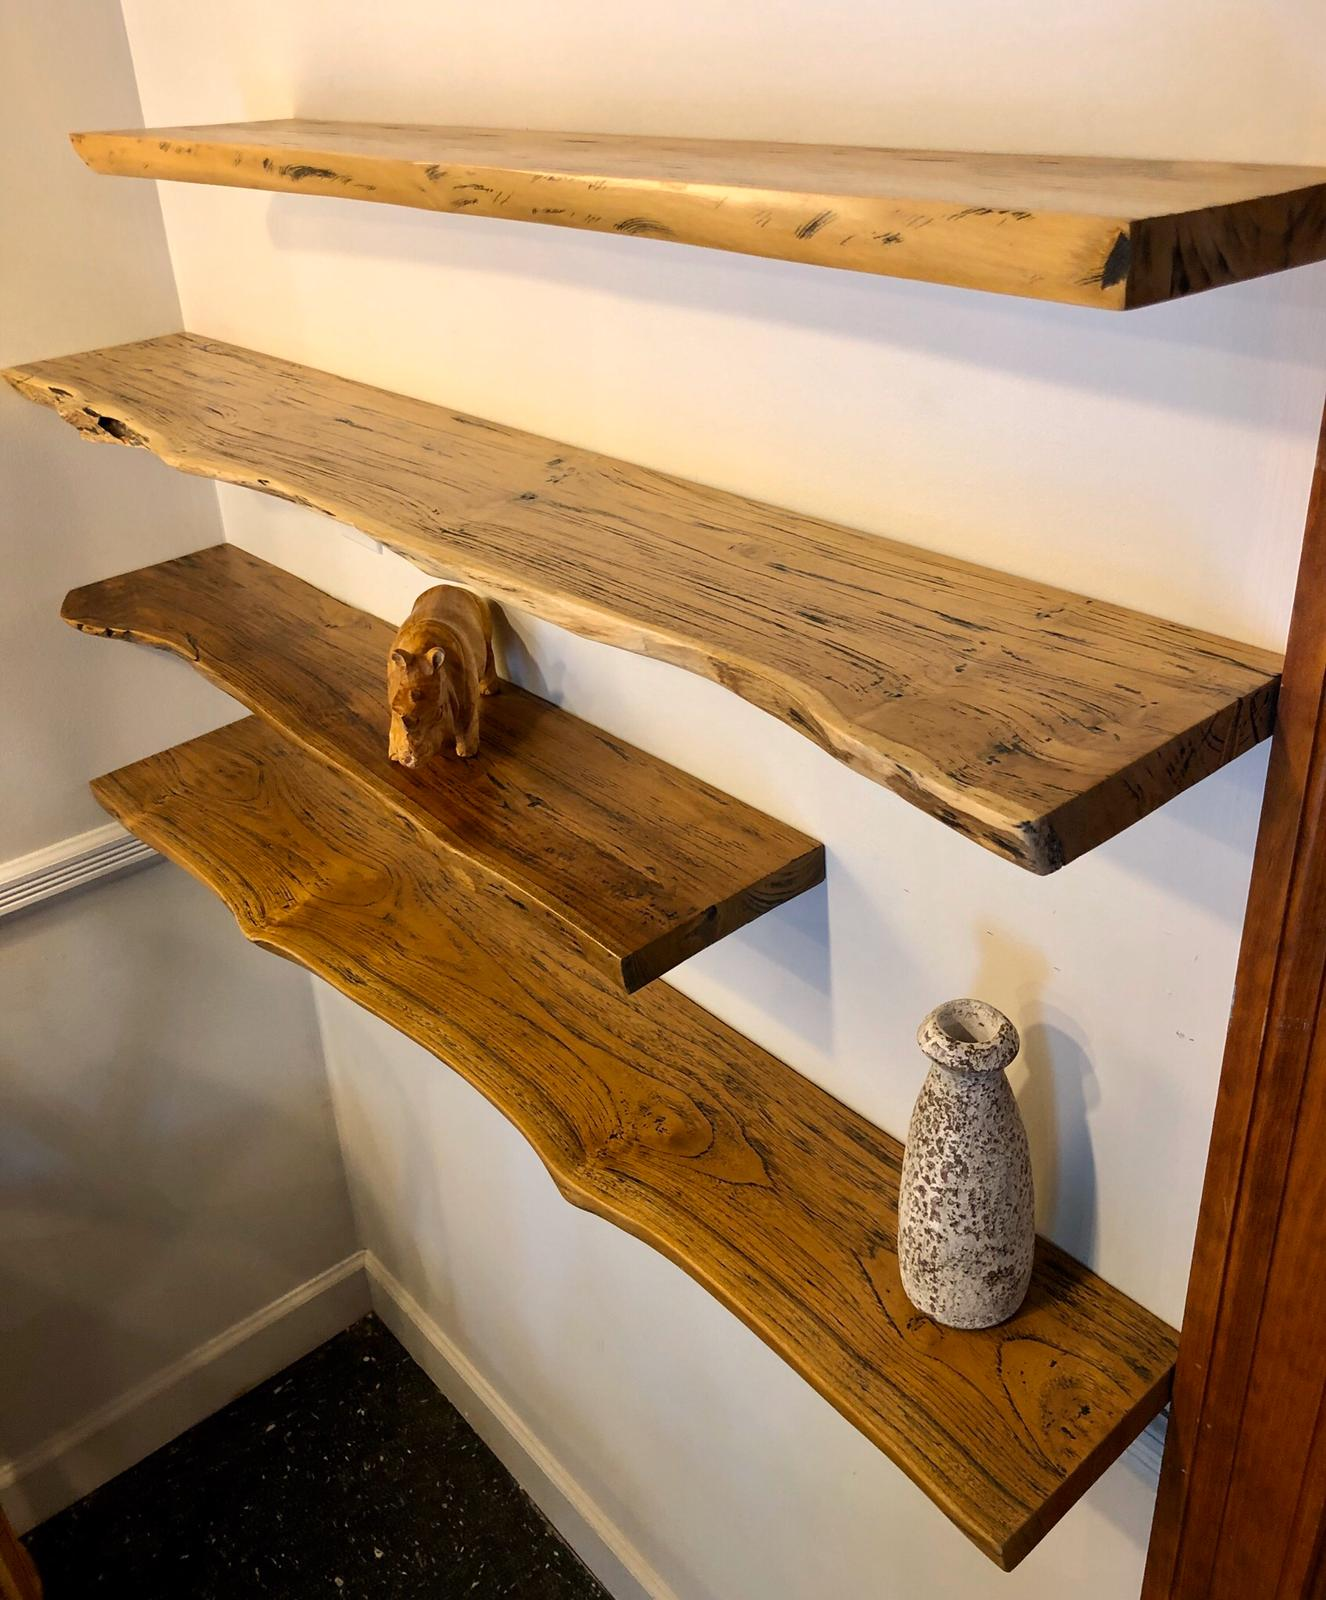 Rustic live edge solid teak wood floating shelf with hardware 35.5